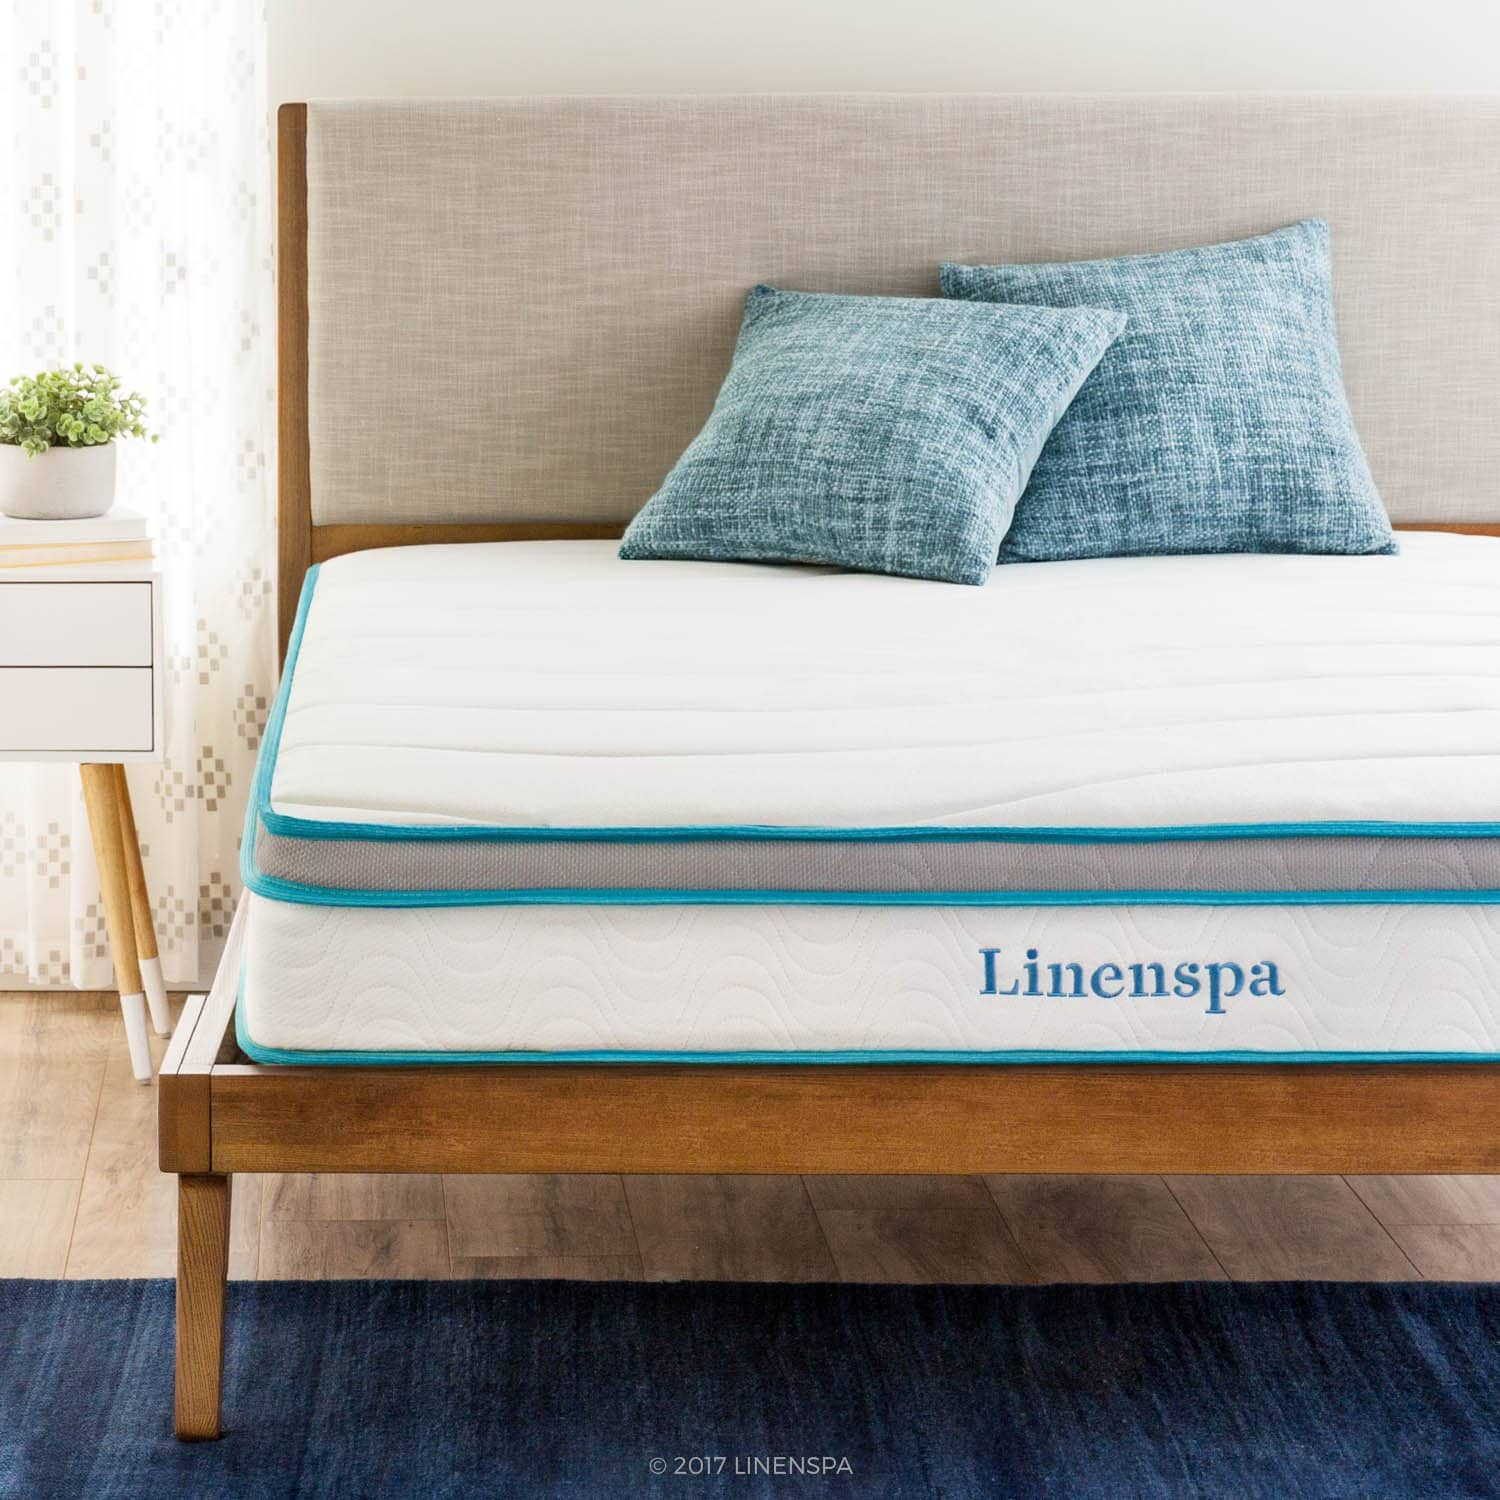 Linenspa 8-Inch Memory Foam and Innerspring Mattress